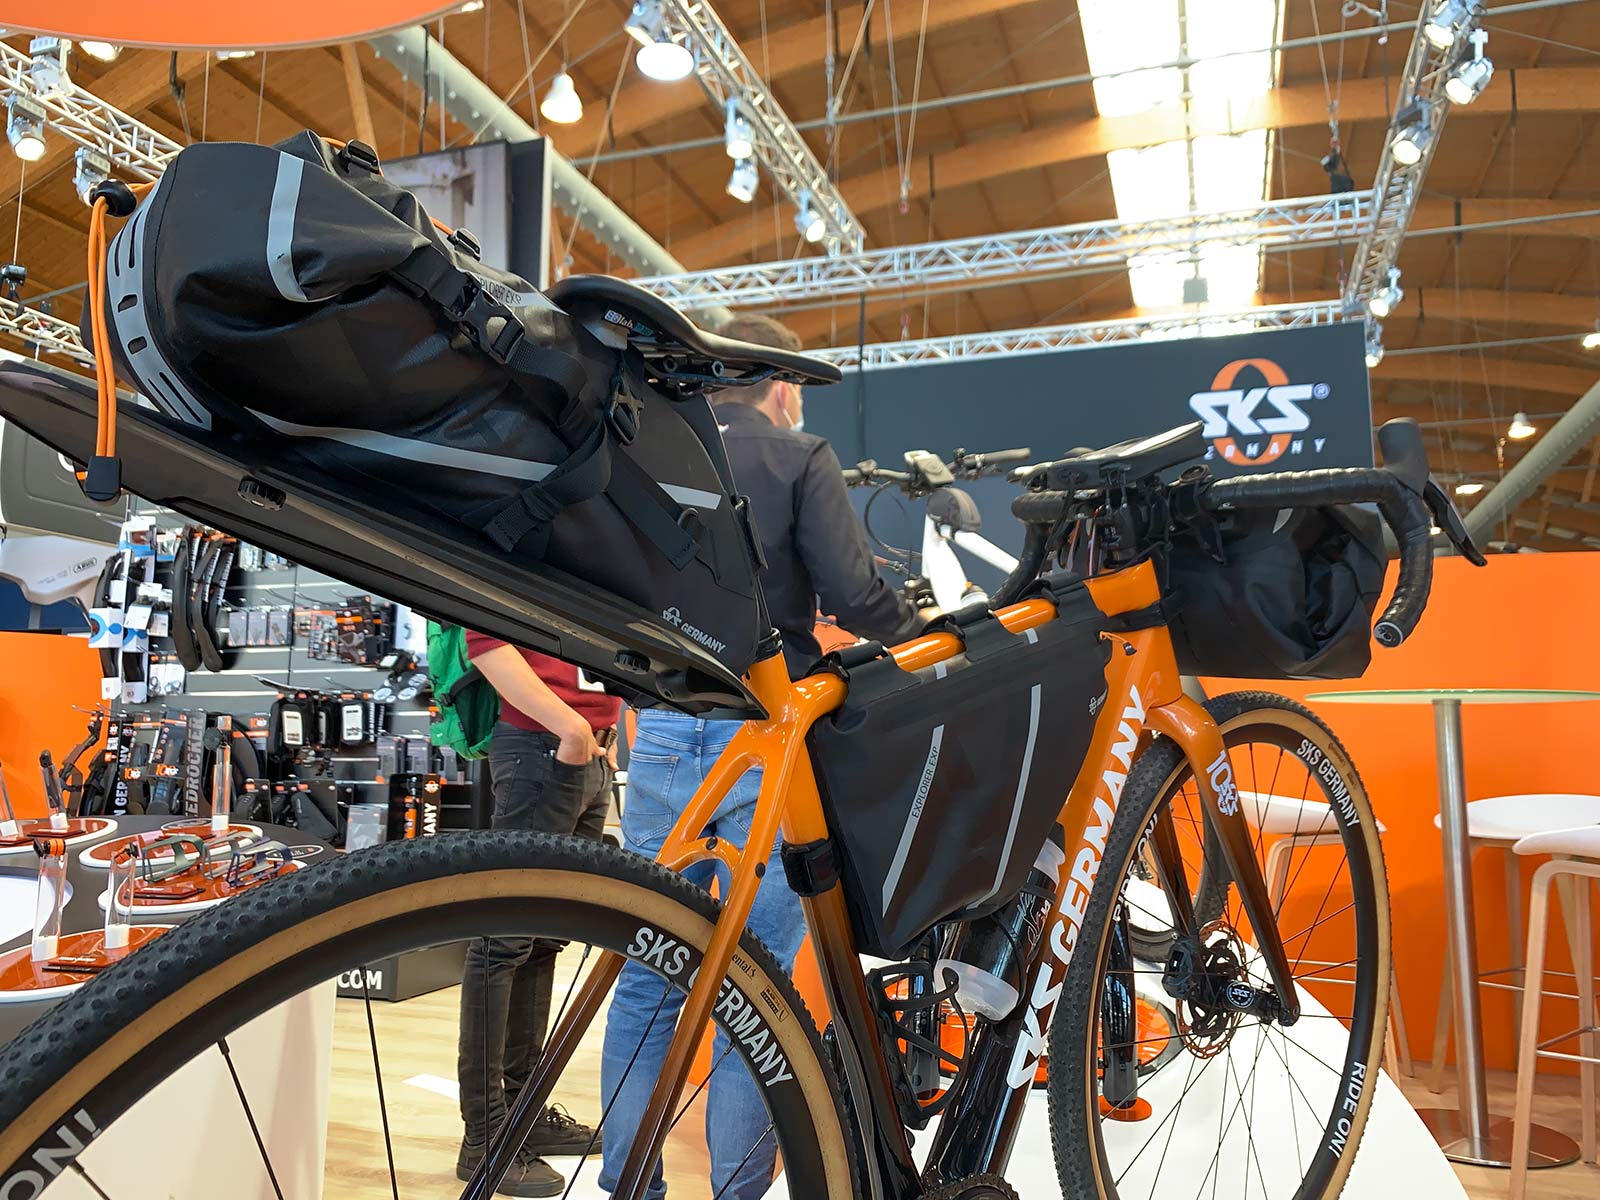 sks explorer series frame bags with integrated rear fender